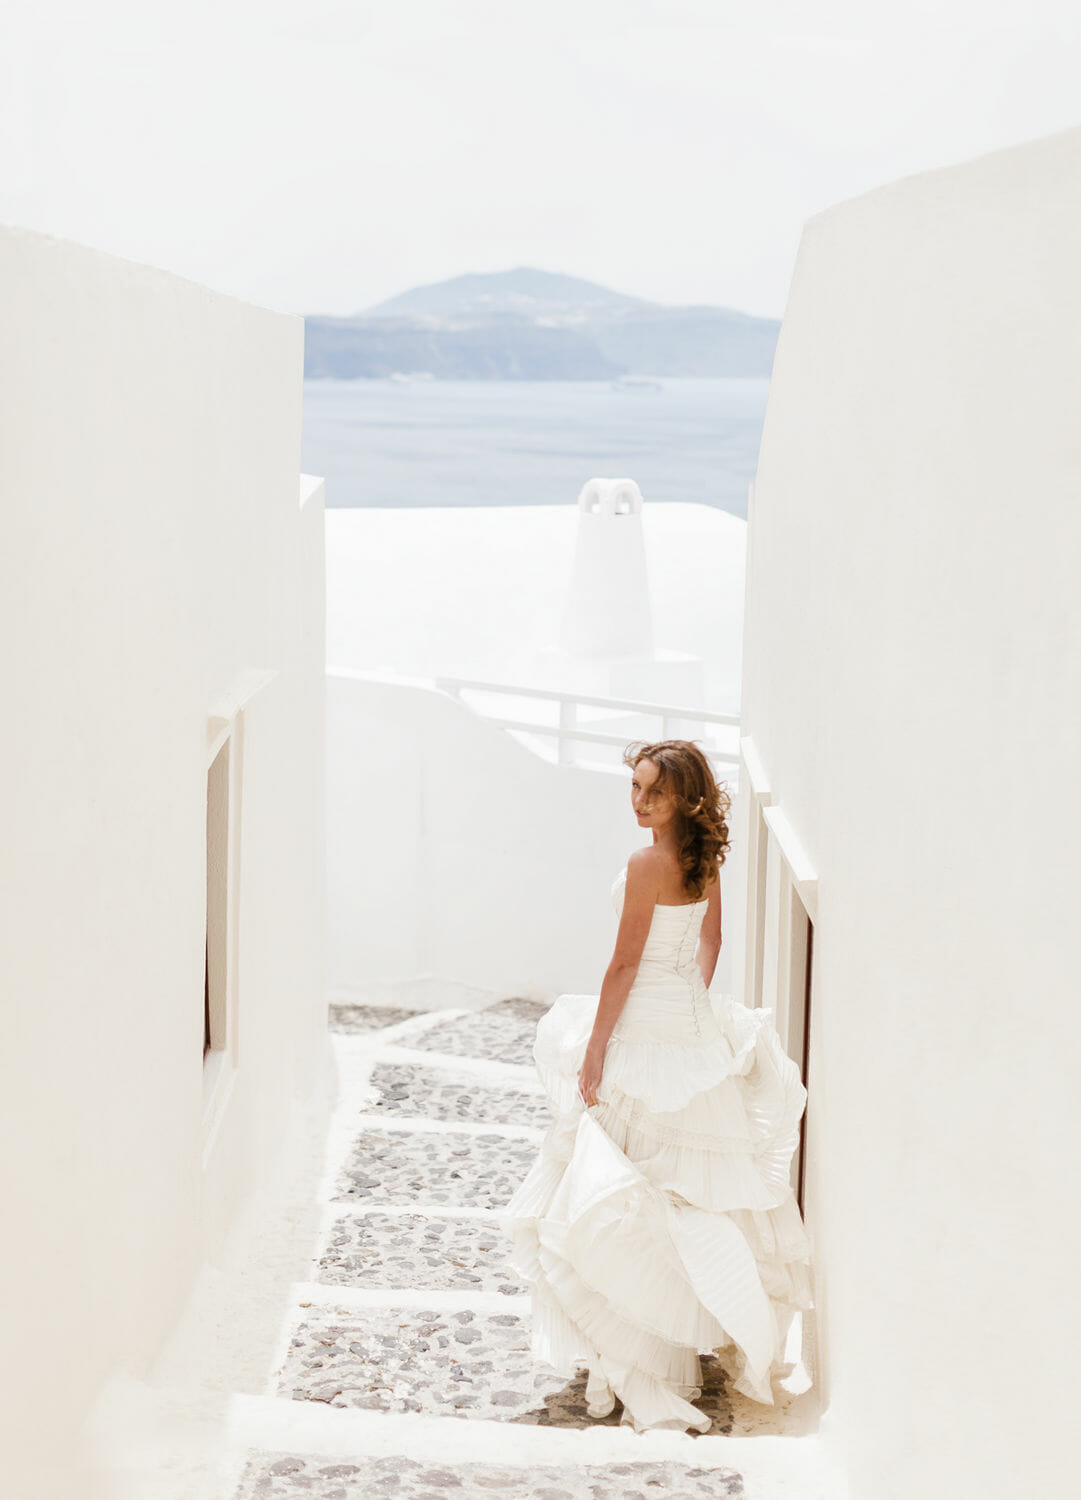 wedding-santorini-greece-anna-andreas-116